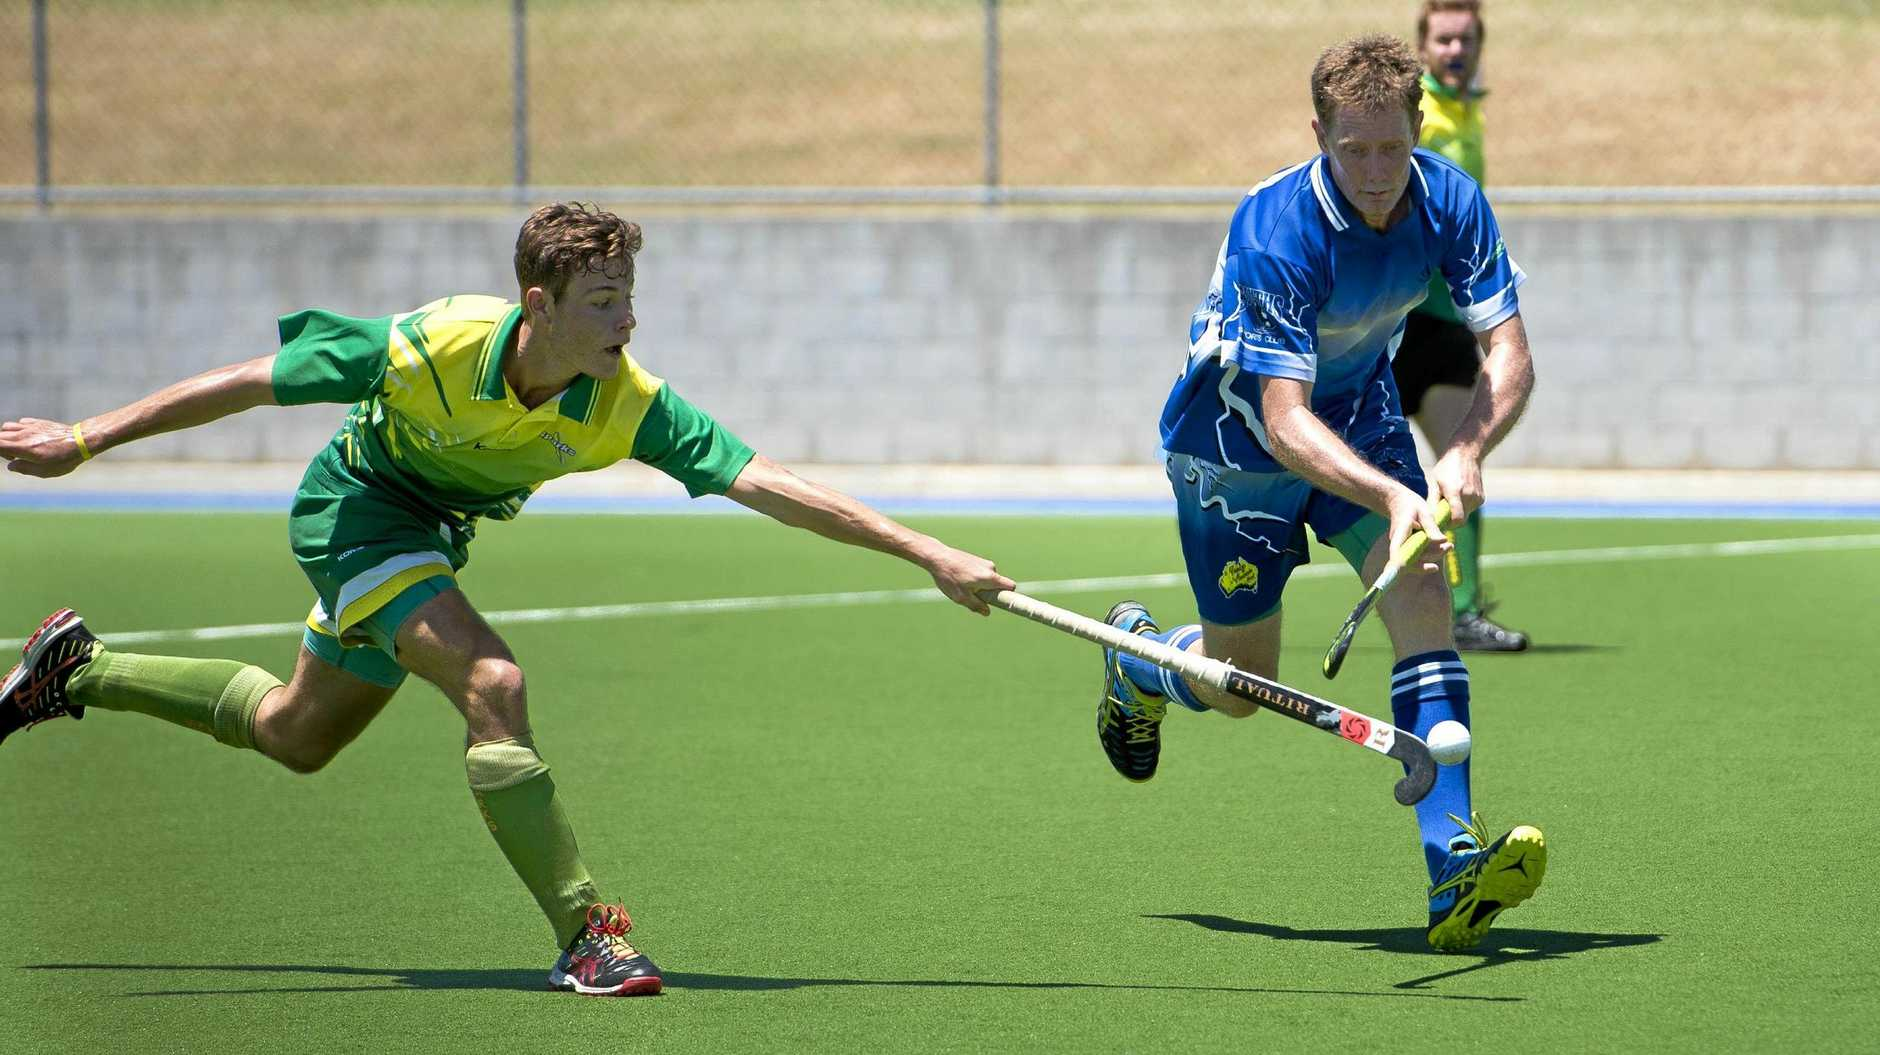 Sparks' Josh Baxter and Souths' Dean Wightman in the Gladstone Hockey 9s games between Sparks and Souths in 2017.